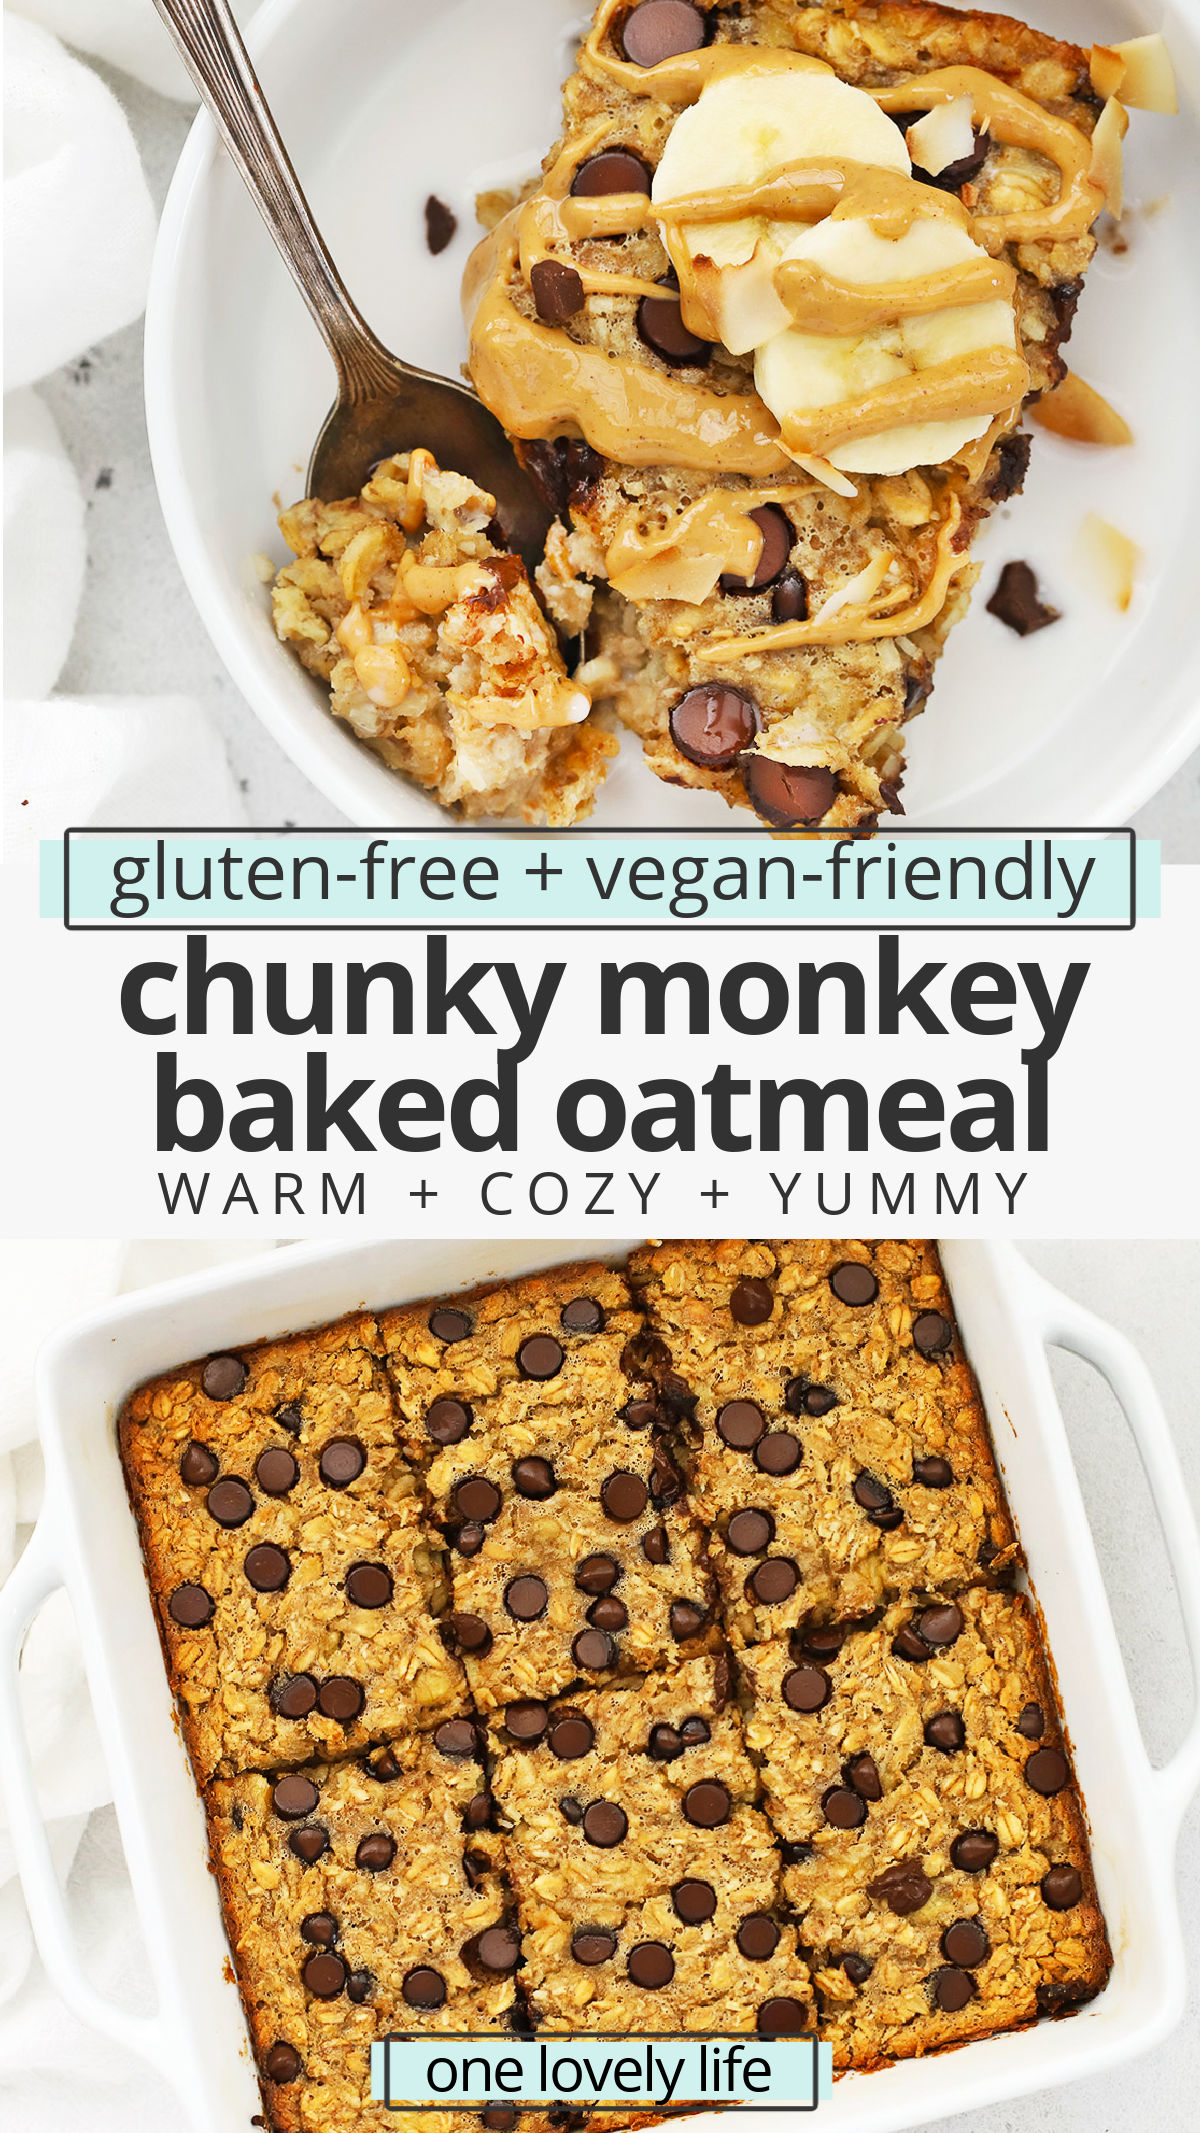 Chunky Monkey Baked Oatmeal - This peanut butter banana baked oatmeal is loaded with goodies like coconut and chocolate chips to make any morning feel special. (Gluten-Free, Vegan-Friendly) // Peanut Butter Banana Baked Oatmeal Recipe // Healthy Baked Oatmeal // Healthy Breakfast #bakedoatmeal #glutenfree #chunkymonkey #oatmeal #healthybreakfast